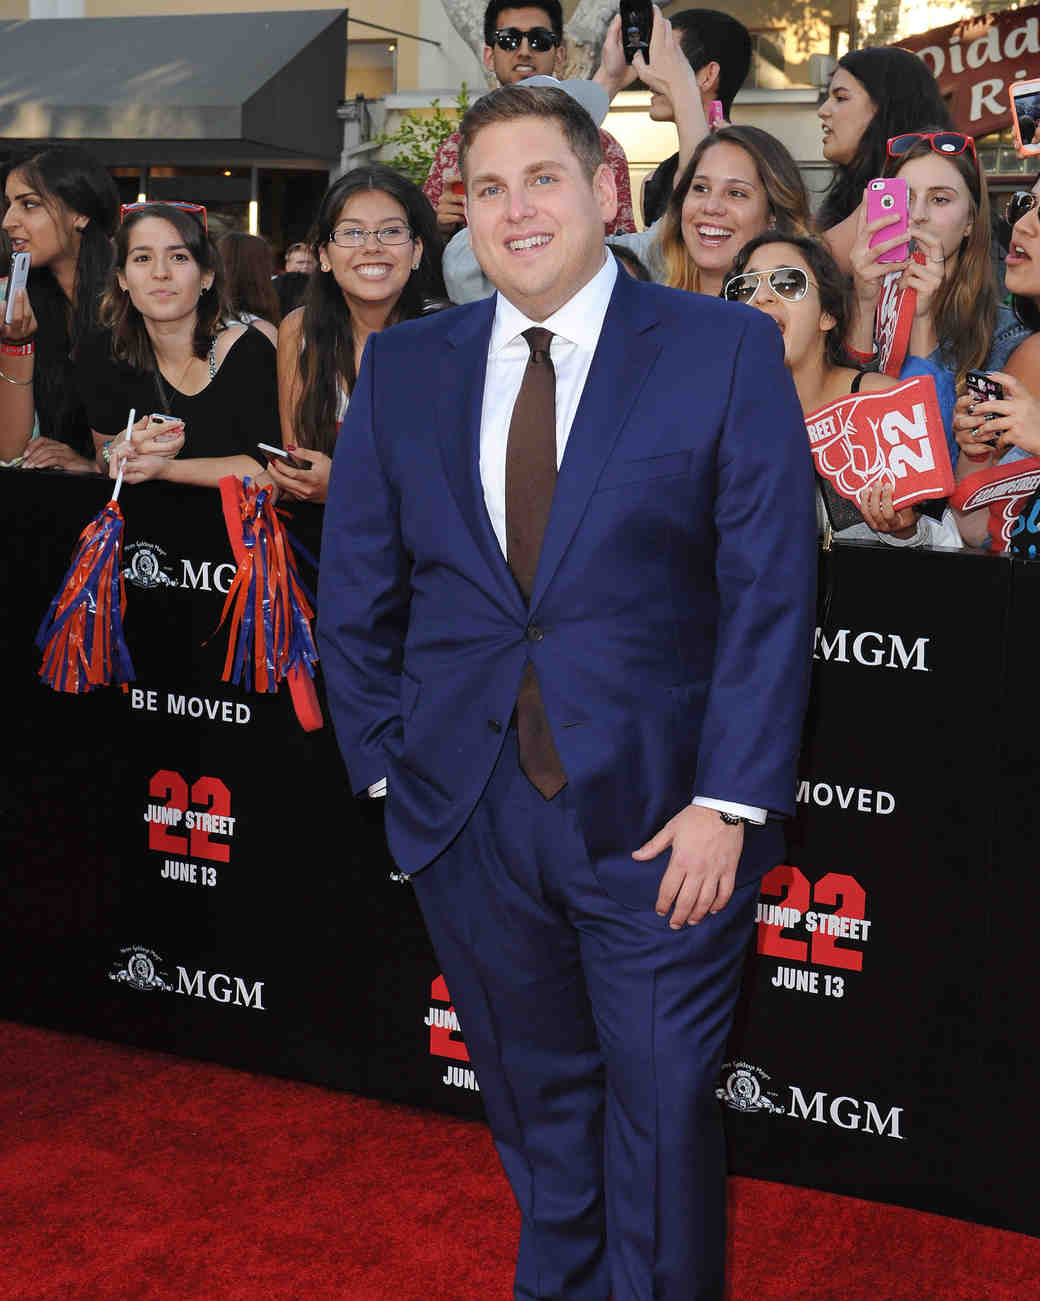 celebrity-wedding-officiants-jonah-hill-1015.jpg